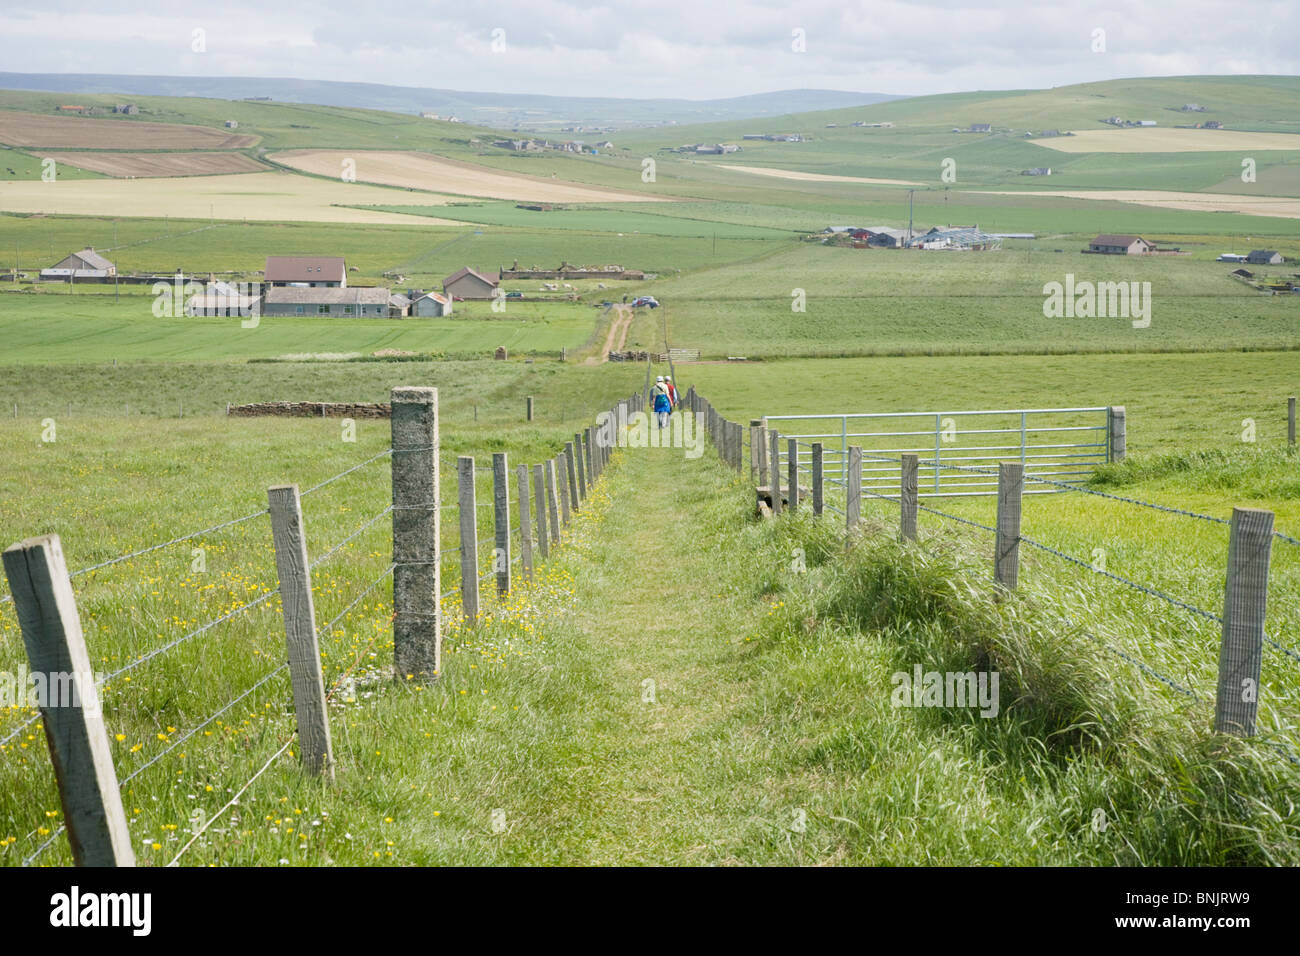 Walkers Orkney Islands LA005069 - Stock Image